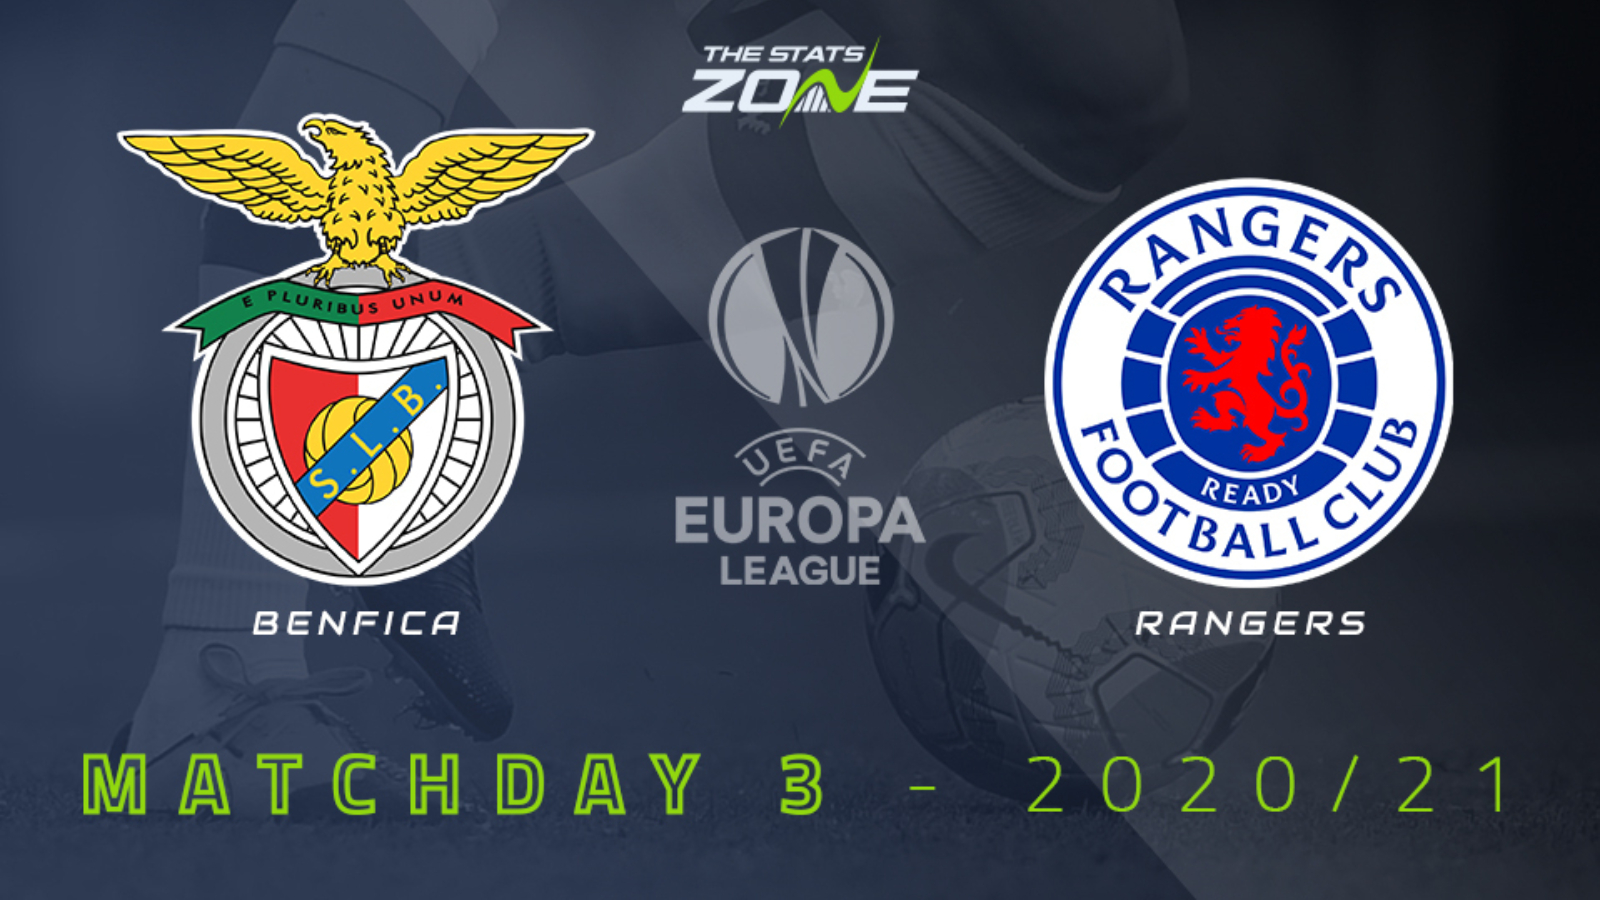 2020-21 UEFA Europa League – Benfica vs Rangers Preview & Prediction - The  Stats Zone